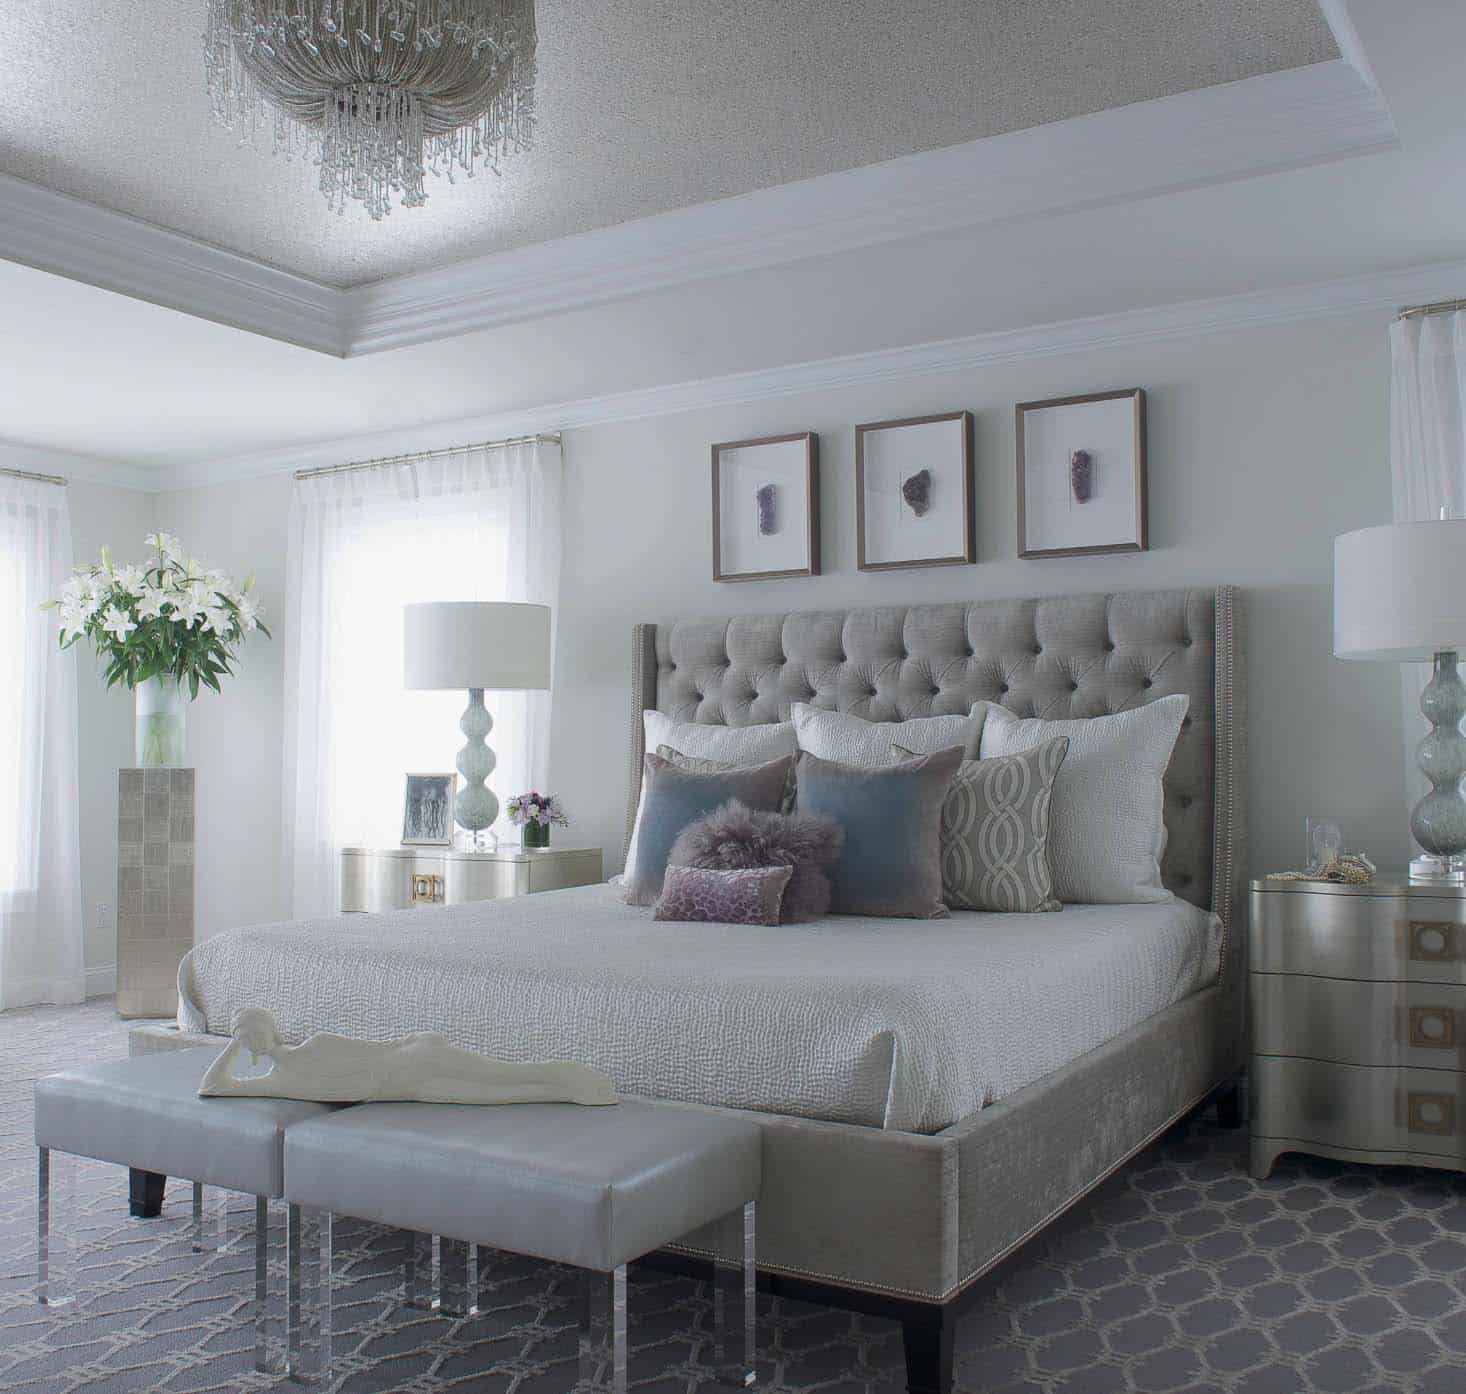 3+ Serene And Elegant Master Bedroom Decorating Ideas